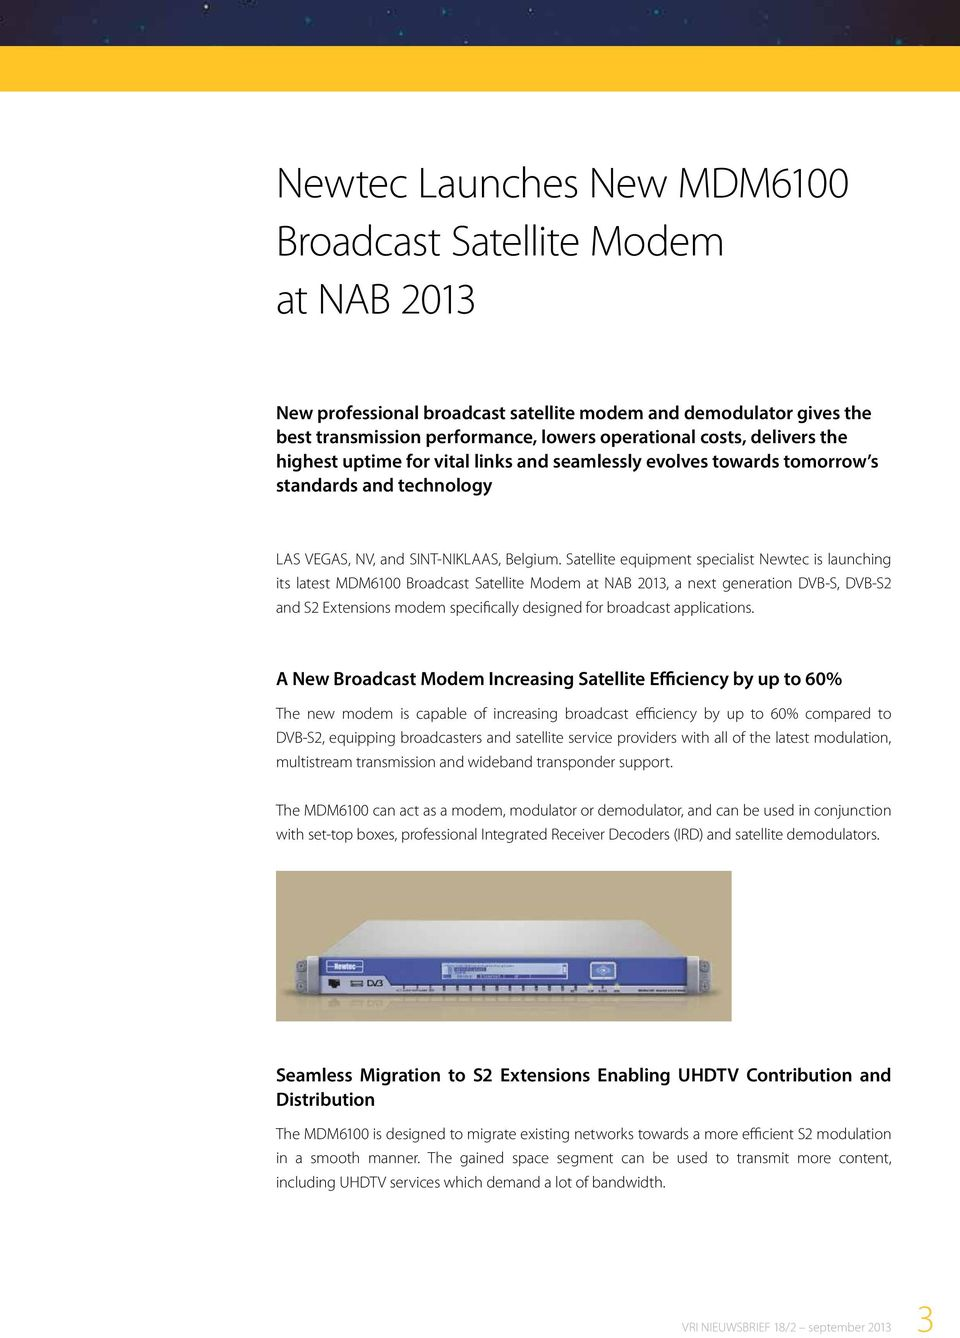 Satellite equipment specialist Newtec is launching its latest MDM6100 Broadcast Satellite Modem at NAB 2013, a next generation DVB-S, DVB-S2 and S2 Extensions modem specifically designed for